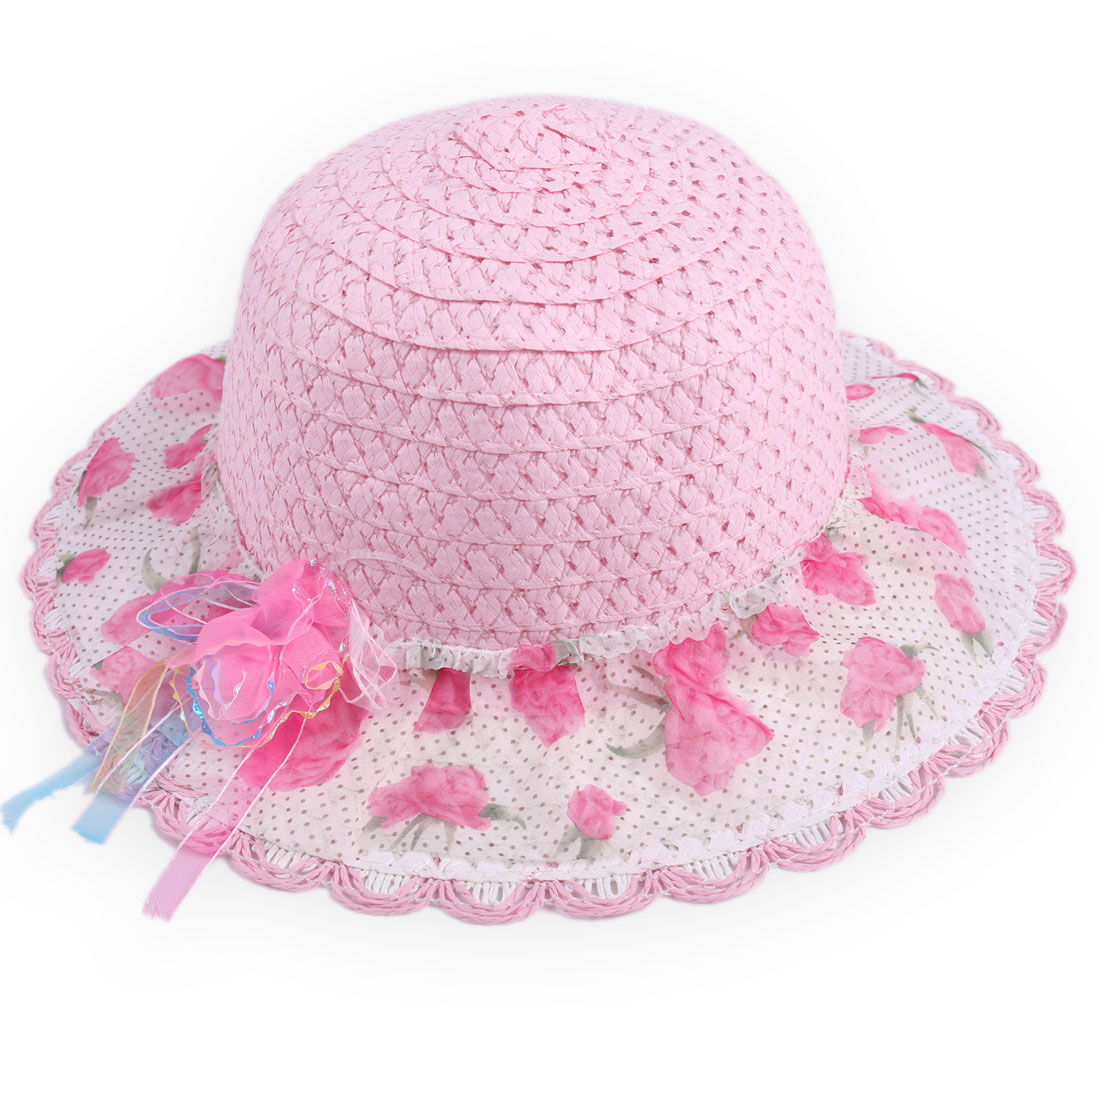 Girls Wavy Brim Flower Embellished Woven Straw Casual Hat Pink